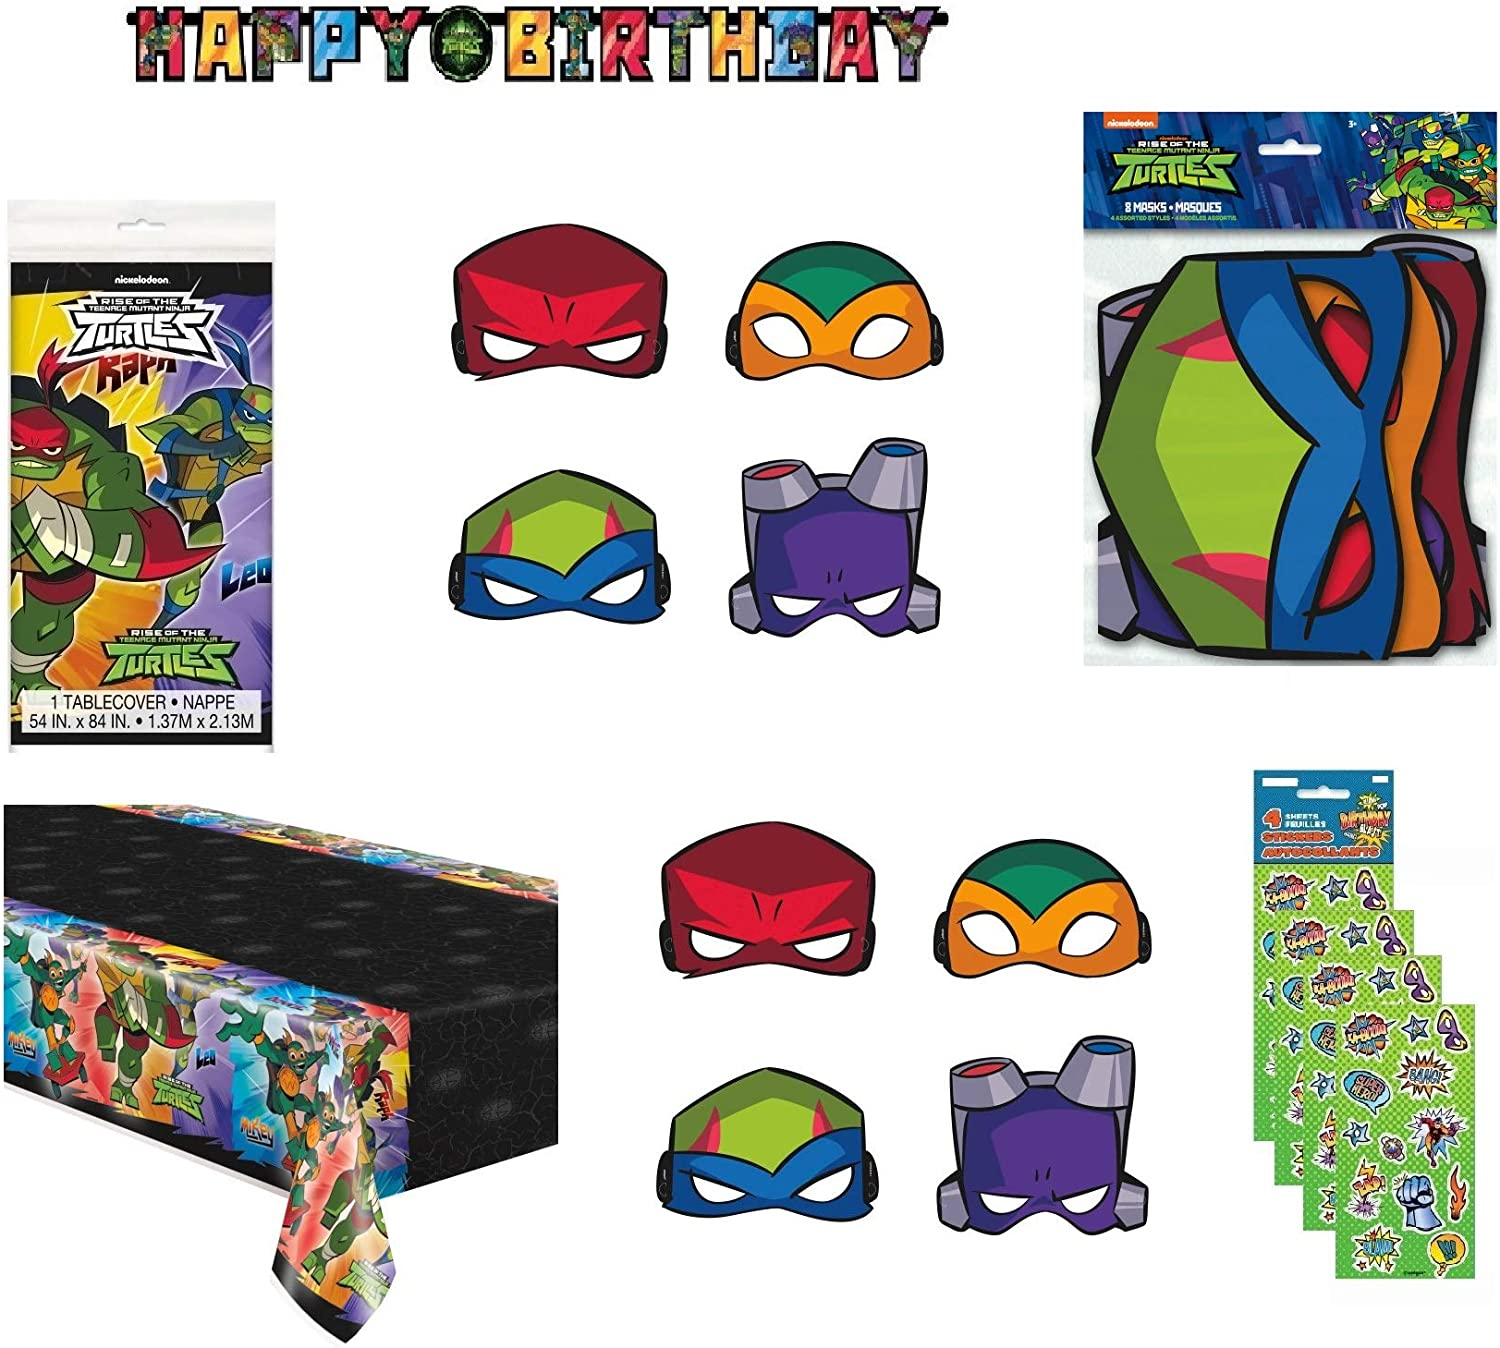 Teenage Mutant Ninja Turtles TMNT Birthday Party Supplies Decoration Bundle includes Banner, Table Cover, Masks, Stickers